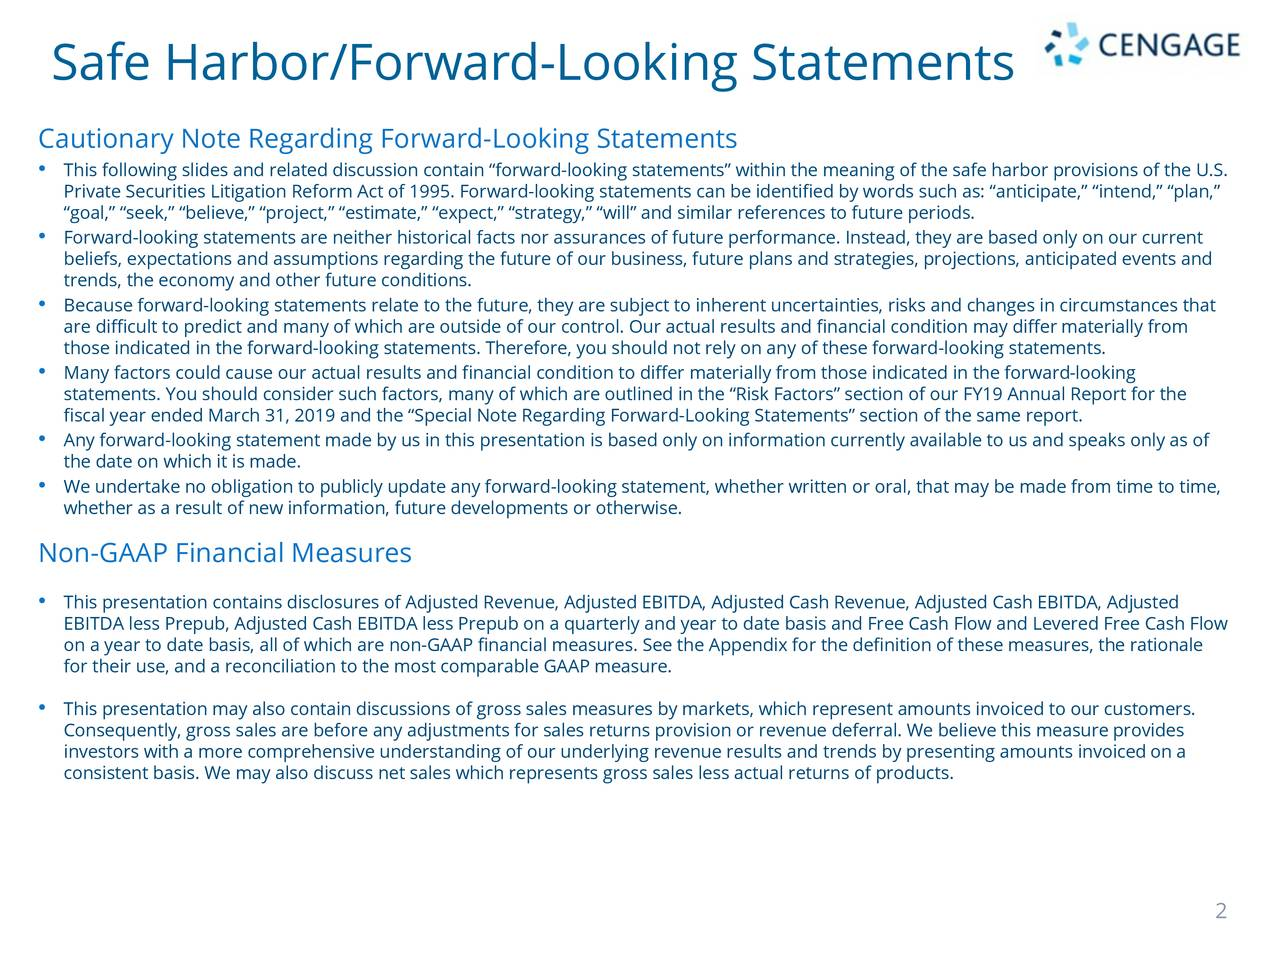 "Cautionary Note Regarding Forward-Looking Statements • This following slides and related discussion contain ""forward-looking statements"" within the meaning of the safe harbor provisions of the U.S. Private Securities Litigation Reform Act of 1995. Forward-looking statements can be identified by words such as: ""anticipate,"" ""intend,"" ""plan,"" ""goal,"" ""seek,"" ""believe,"" ""project,"" ""estimate,"" ""expect,"" ""strategy,"" ""will"" and similar references to future periods. • Forward-looking statements are neither historical facts nor assurances of future performance. Instead, they are based only on our current beliefs, expectations and assumptions regarding the future of our business, future plans and strategies, projections, anticipated events and trends, the economy and other future conditions. • Because forward-looking statements relate to the future, they are subject to inherent uncertainties, risks and changes in circumstances that are difficult to predict and many of which are outside of our control. Our actual results and financial condition mmaterially from those indicated in the forward-looking statements. Therefore, you should not rely on any of these forward-looking statements. • Many factors could cause our actual results and financial condition to differ materially from those indicated in the-looking statements. You should consider such factors, many of which are outlined in the ""Risk Factors"" section of our FY19 Annual Report for the fiscal year ended March 31, 2019 and the ""Special Note Regarding Forward-Looking Statements"" section of the same report. • Any forward-looking statement made by us in this presentation is based only on information currently available to us and speaks only as of the date on which it is made. • We undertake no obligation to publicly update any forward-looking statement, whether written or oral, that may be made from time to time, whether as a result of new information, future developments or otherwise. Non-GAAP Financial Measures • This presentation contains disclosures of Adjusted Revenue, Adjusted EBITDA, Adjusted Cash Revenue, Adjusted Cash EBITDA, Adj sted EBITDA less Prepub, Adjusted Cash EBITDA lessPrepub on a quarterly and year to date basis and Free Cash Flow and Levered Free Cash Flow on a year to date basis, all of which are non-GAAP financial measures. See the Appendix for the definition of these measures, the rationale for their use, and a reconciliation to the most comparable GAAP measure. • This presentation may also contain discussions of gross sales measures by markets, which represent amounts invoiced to our customers. Consequently, gross sales are before any adjustments for sales returns provision or revenue deferral. We believe this meaprovides investors with a more comprehensive understanding of our underlying revenue results and trends by presenting amounts invoicedon a consistent basis. We may also discuss net sales which represents gross sales less actual returns of products. 2"